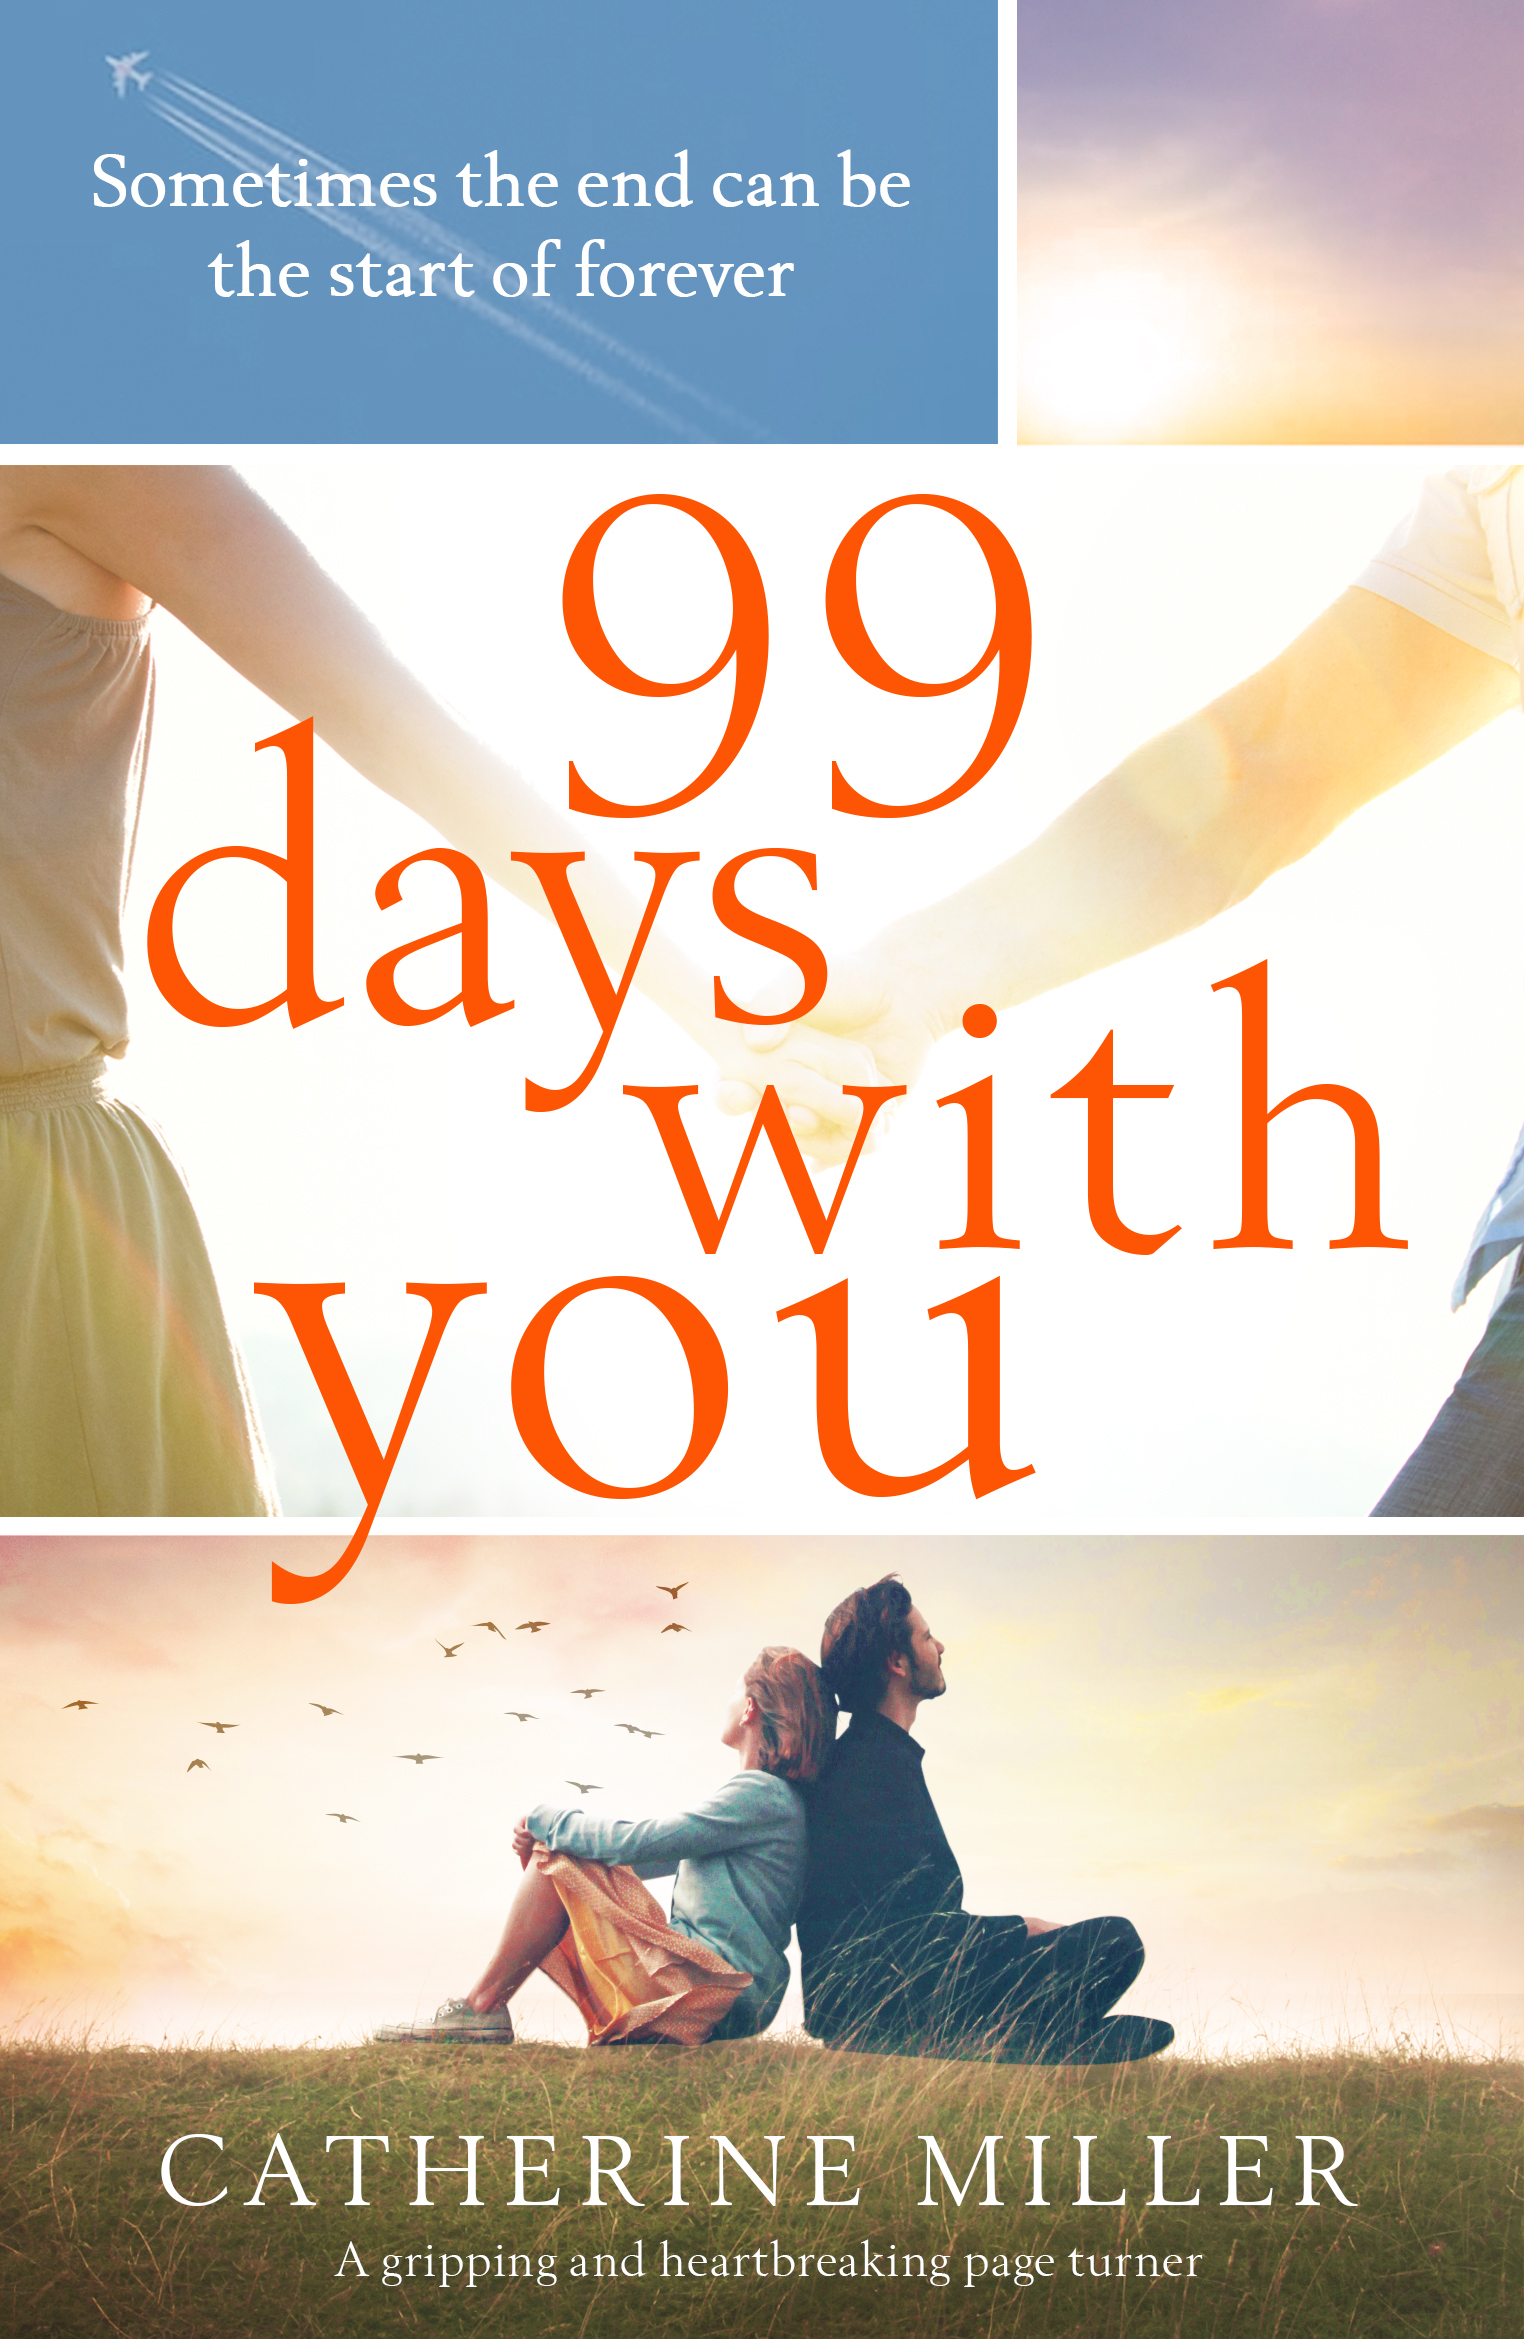 99 DAYS WITH YOU  Contemporary Fiction, ebook, 273 pages, Bookouture, June 2019  Sometimes the end is the start of forever…  Emma and Nathan couldn't be more different. But when they meet in a hospital waiting room, to the sound of a ticking clock and surrounded by faded magazines, they are both terrified, nervous and alone. And they have one fatal thing in common…  Emma lives a quiet life. She looks after her disabled mother. She lives vicariously through the well-thumbed pages and cracked spines of her beloved books.  Nathan spends his days fifteen thousand feet above the ground, soaring through the air, stomach somersaulting, as a sky diving instructor. After a lifetime of having a recurring dream that he would die at twenty-seven, he treats every day like it's his last.  As fate throws Emma and Nathan together, everything is about to change.  Emma has never been kissed, or tasted champagne, or travelled abroad. Nathan has never fallen in love, worn odd socks, or grown a sunflower from a seed.  Emma and Nathan vow never to waste an hour, knowing that goodbye could come all too soon. But as they lose their hearts to one another against all the odds, have they found each other too late?